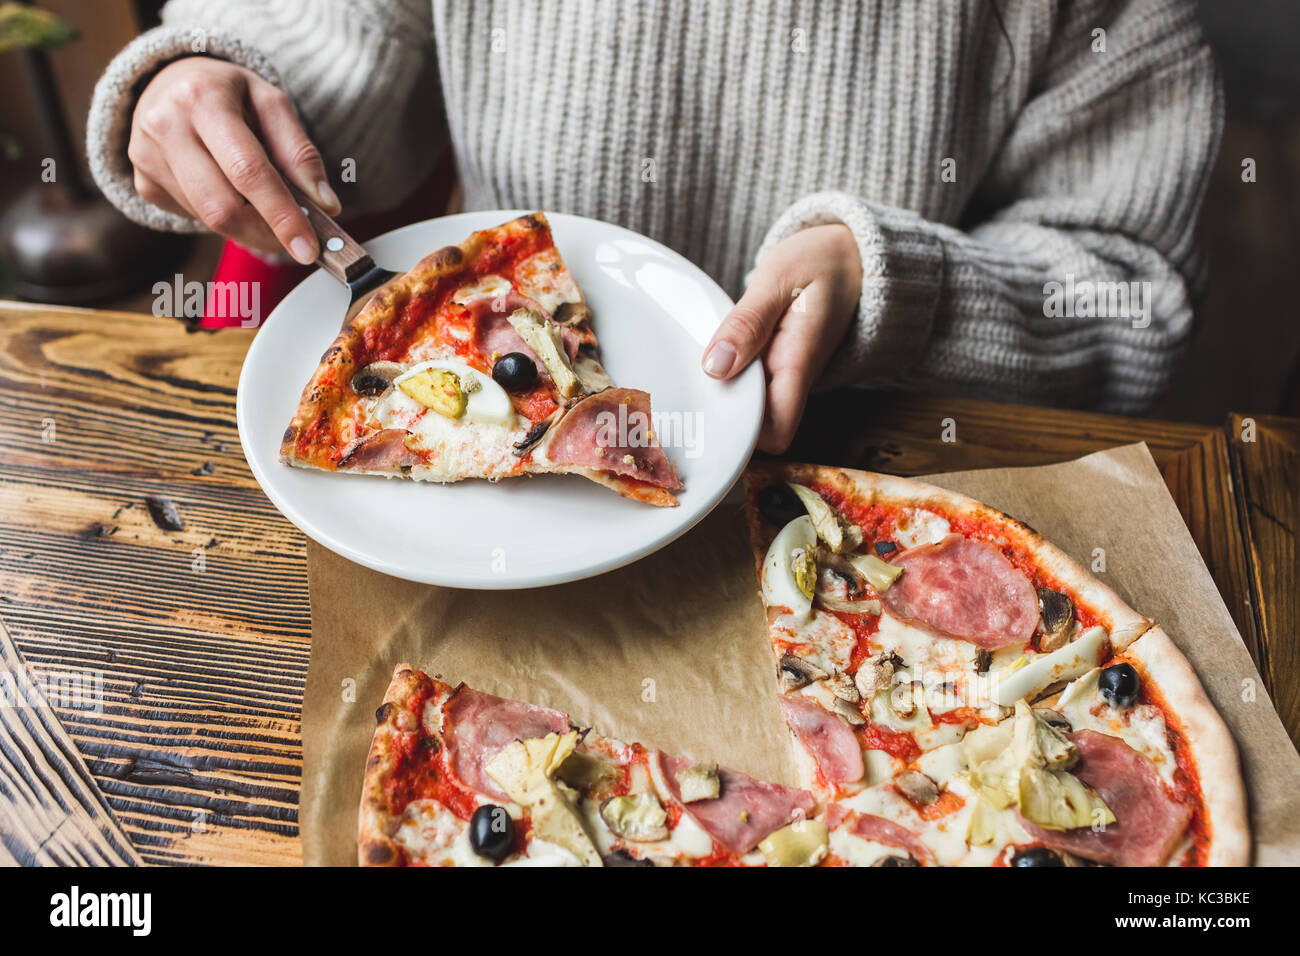 Woman hands put on a plate a piece of fresh hot pizza with ham, artichokes, olives and tomatoes - Stock Image